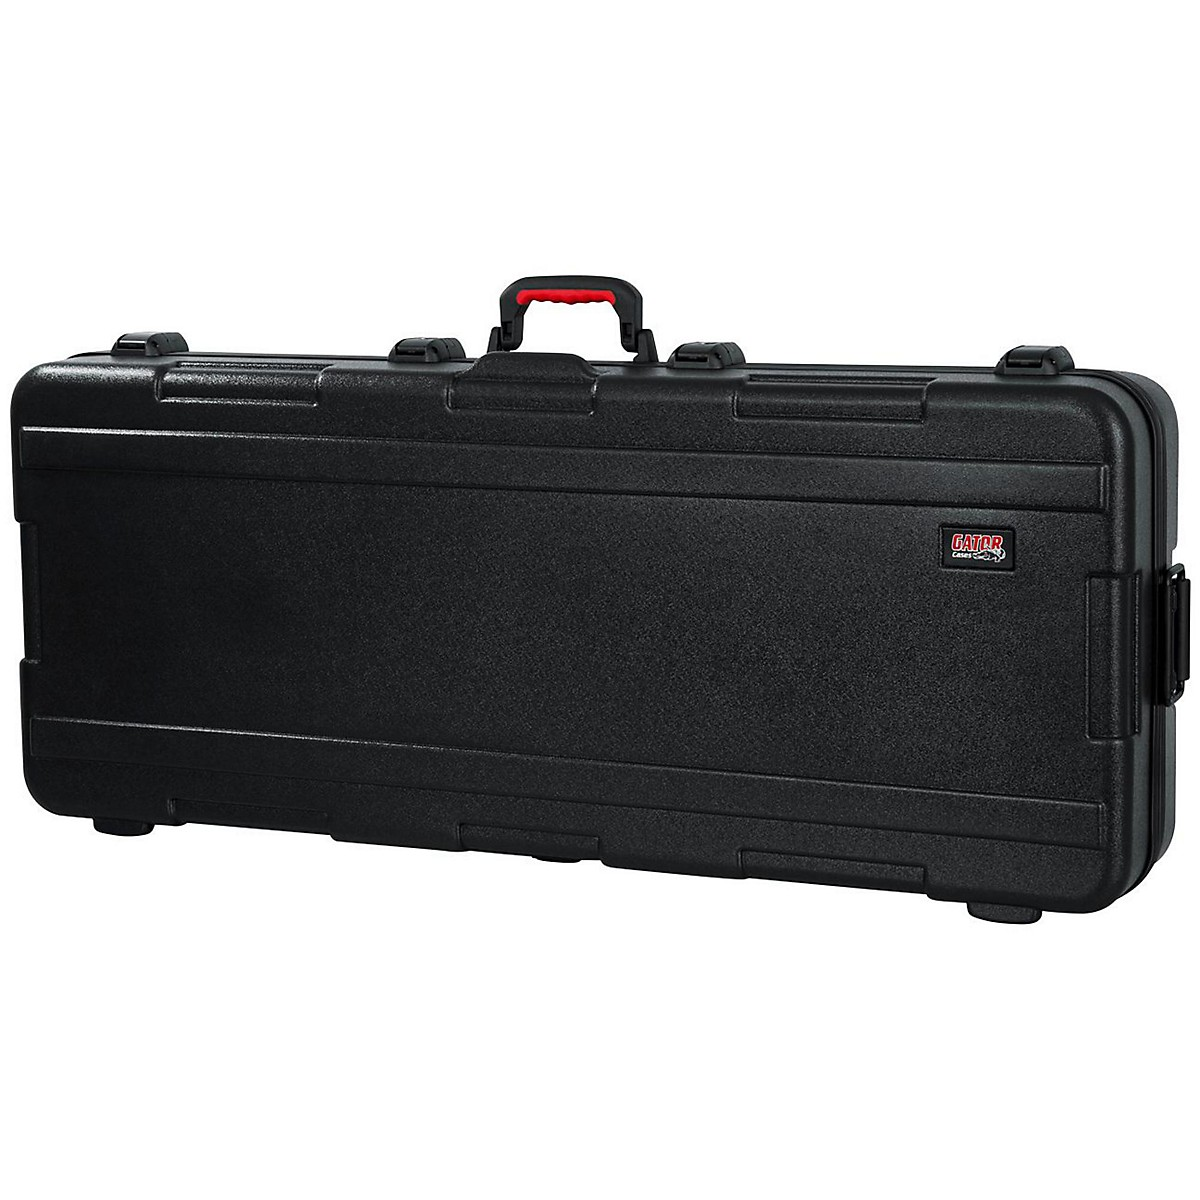 Gator TSA ATA Molded Keyboard Case